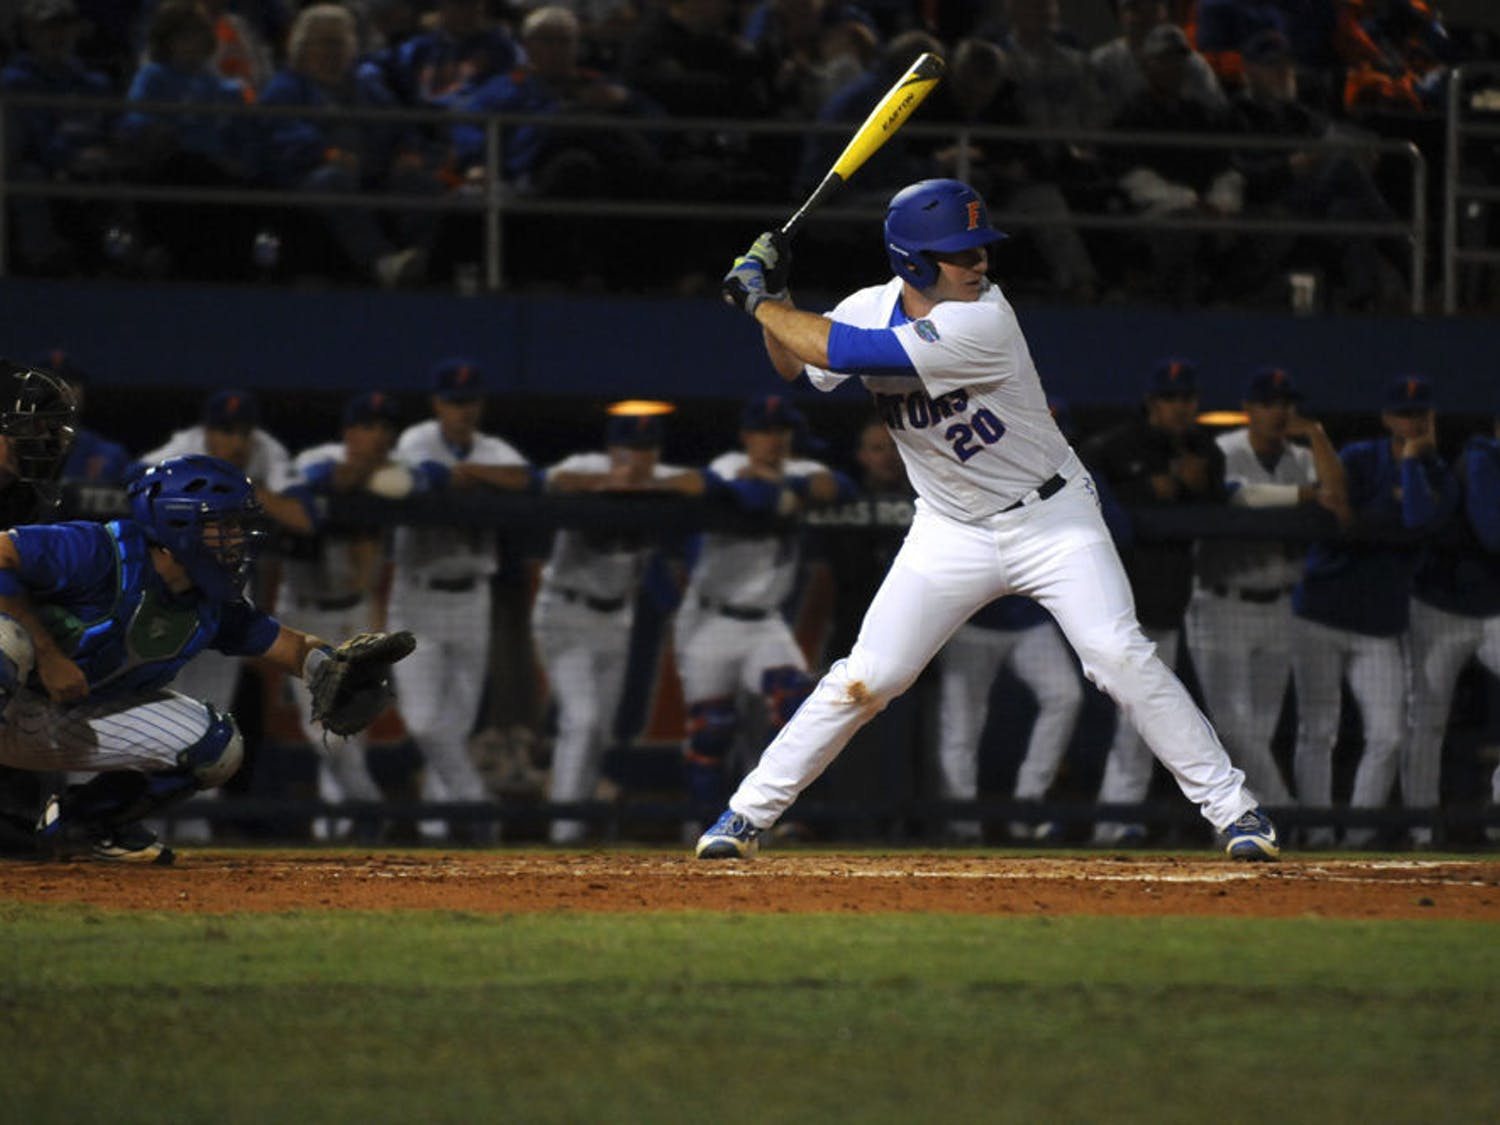 Former Gators and current New York Mets first baseman Pete Alonso is batting .378 with 17 hits and six home runs.